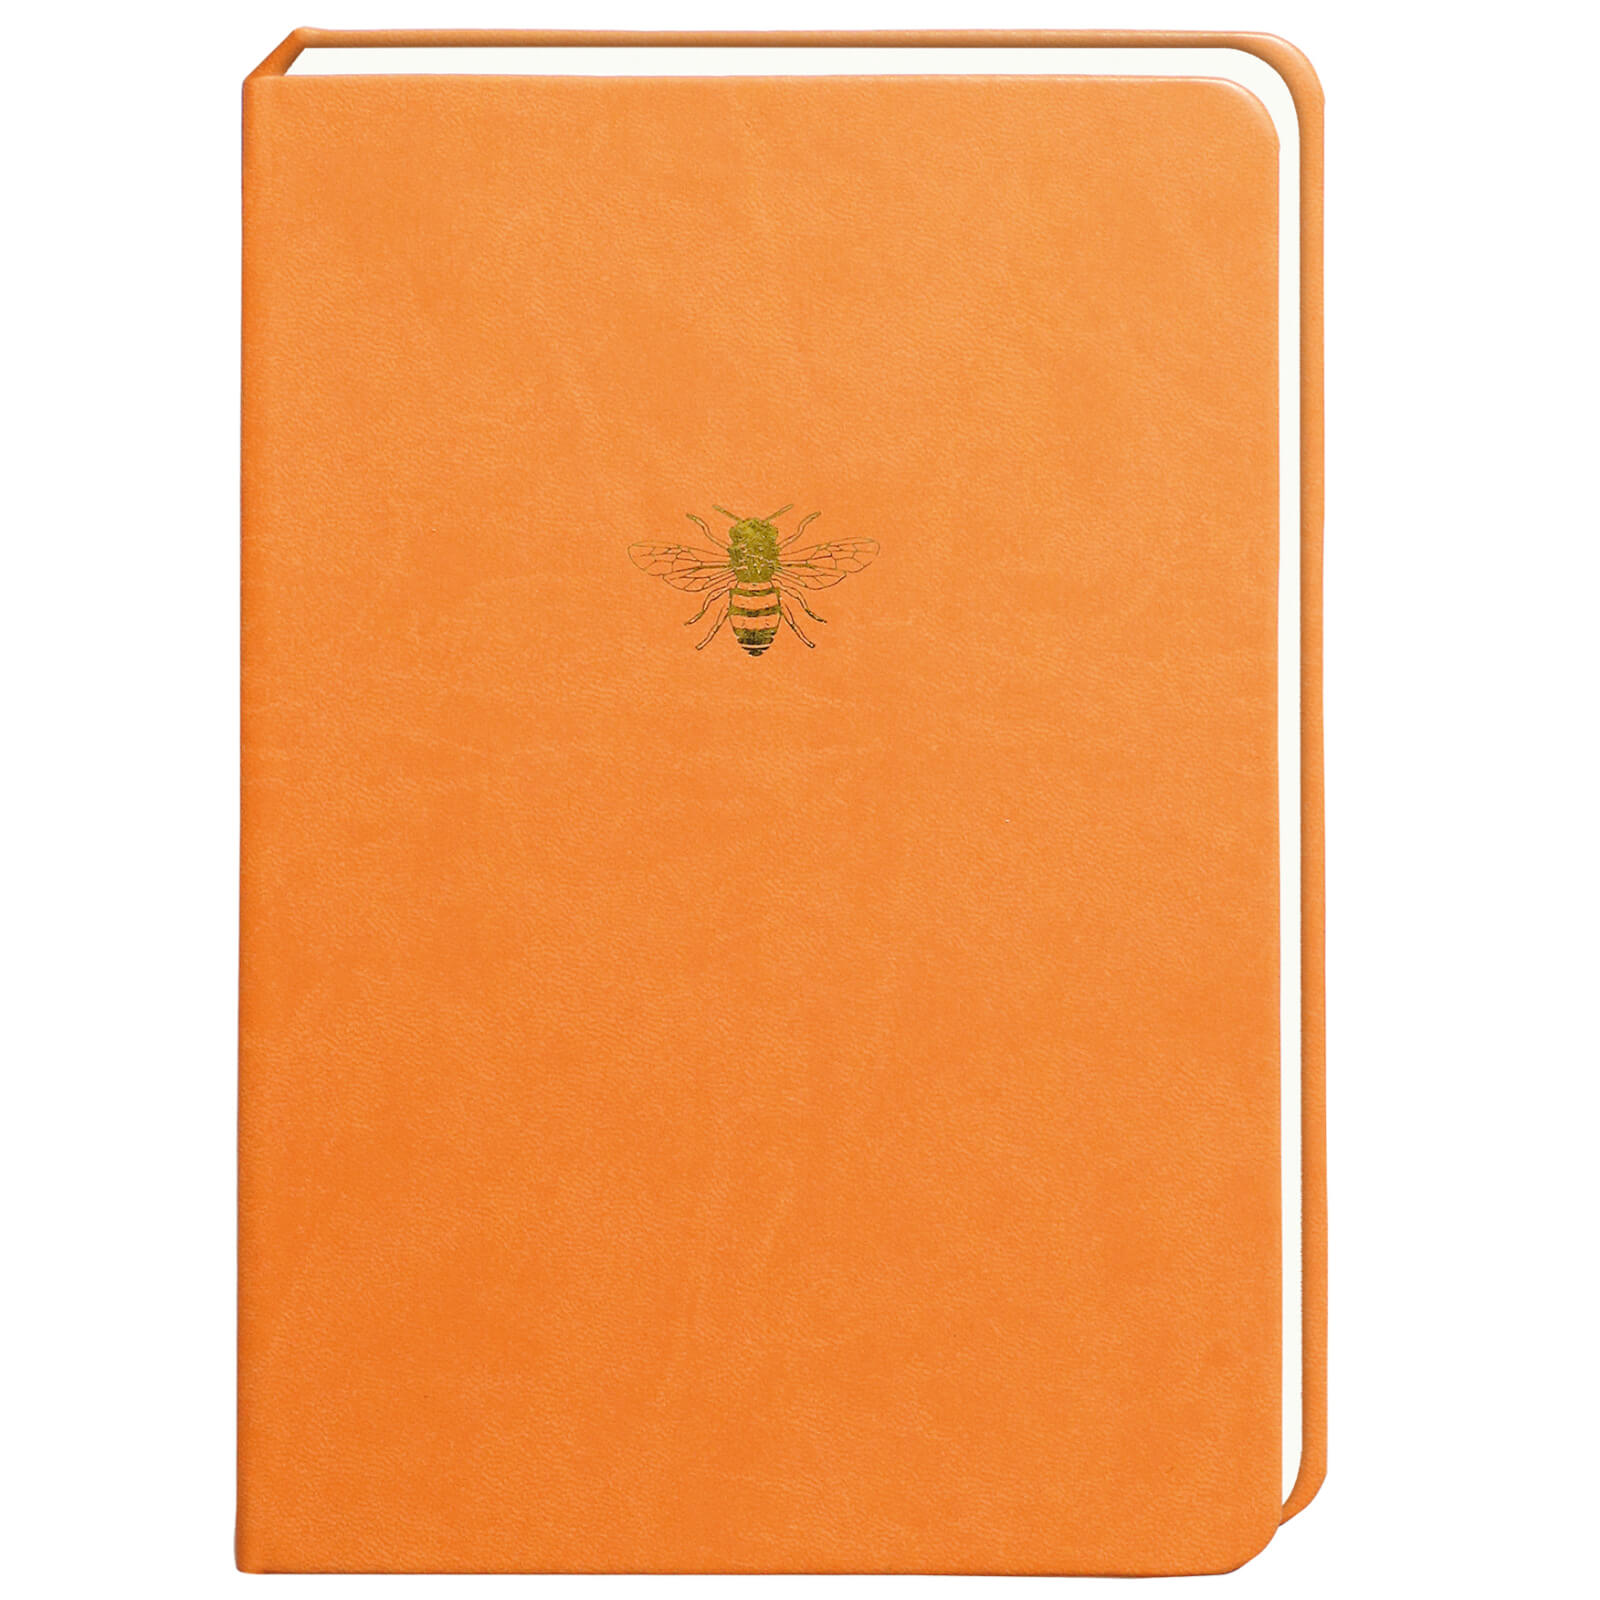 Sky + Miller Bee Notebook - Orange